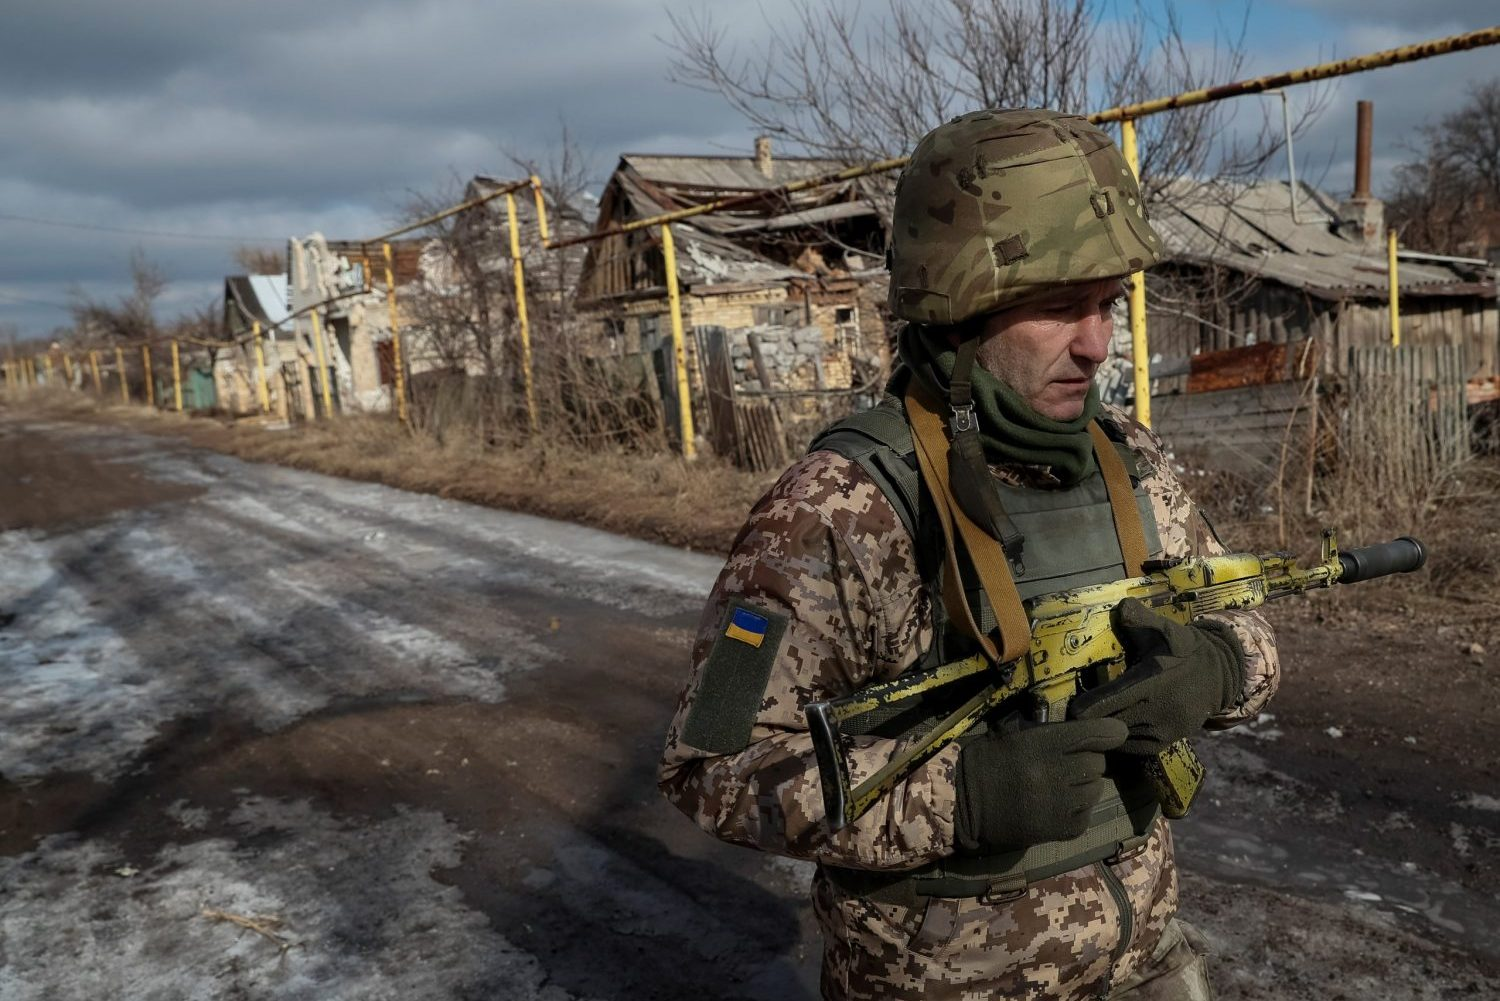 Bohdan out, Yermak in: What next for Ukraine?